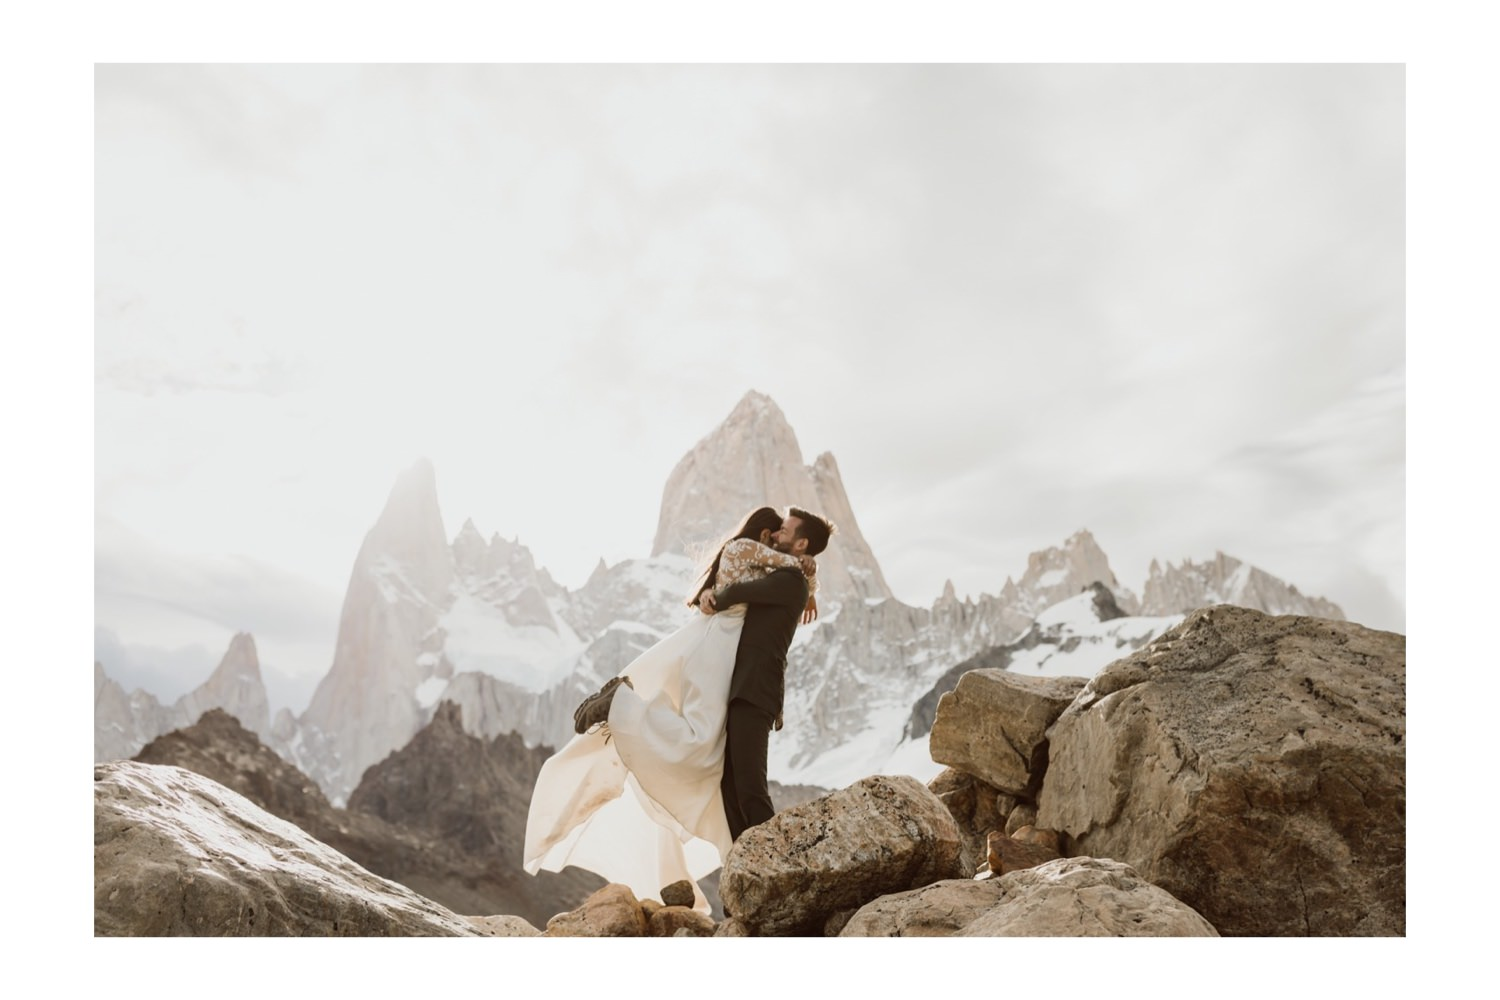 patagonia-argentina-adventure-wedding-session-13.jpg